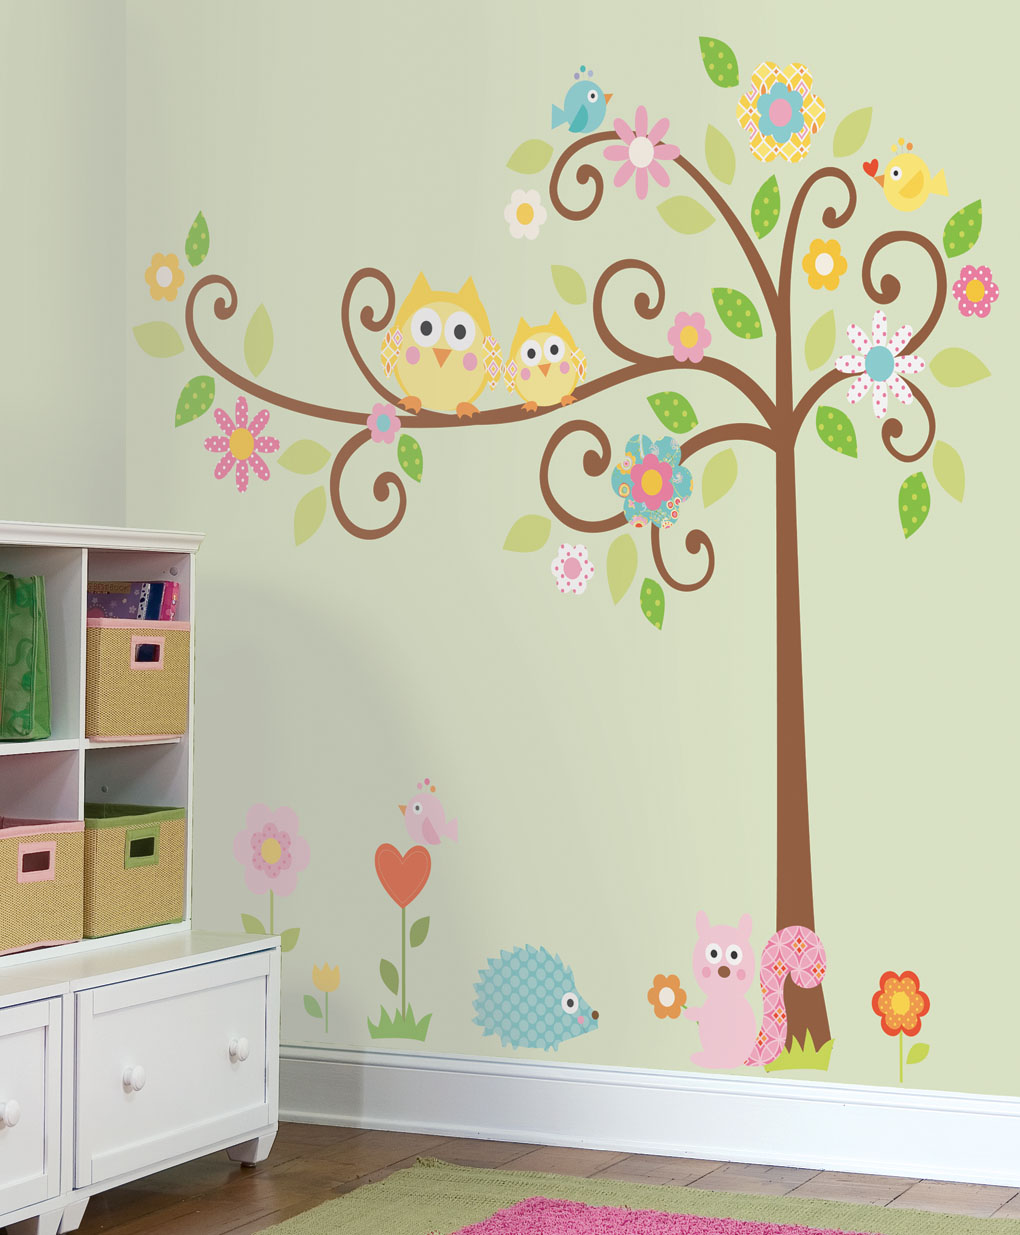 Wall Stickers Decoration Artistic Wall Decals Kids Art Wall Decor